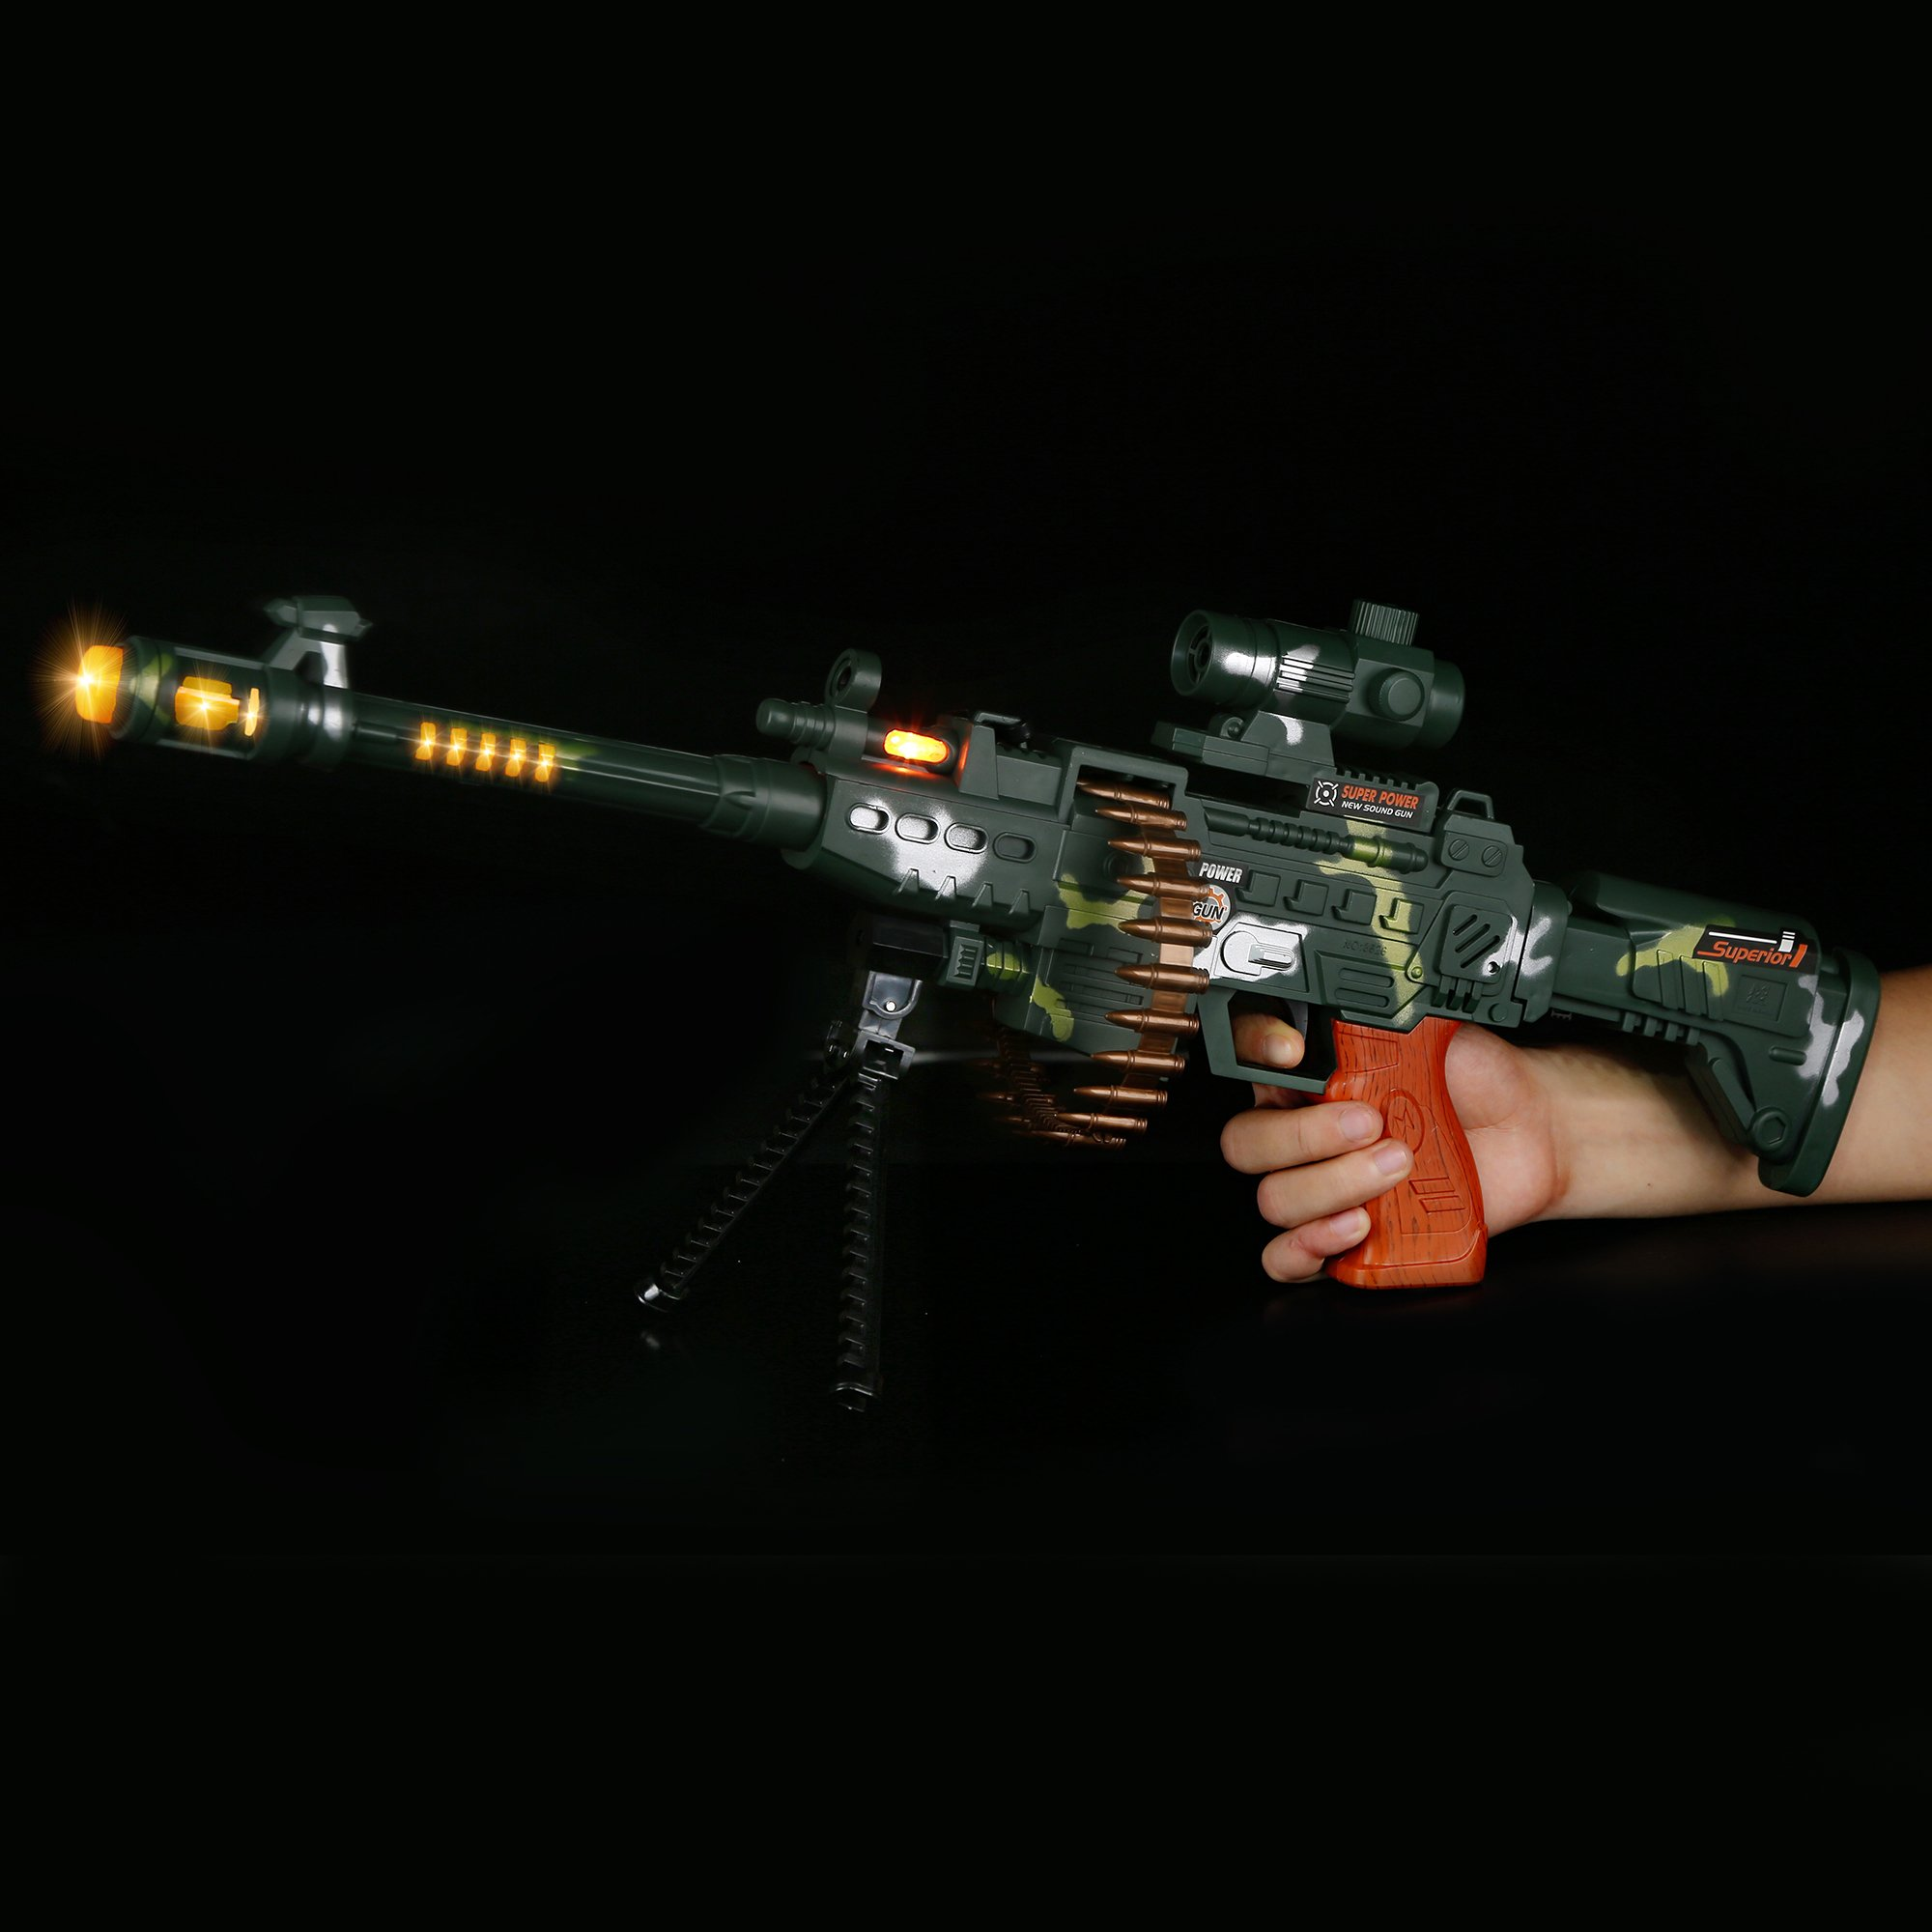 Fun Central AT754 LED Camo Sniper Rifle, LED Light Up Rifle, LED Camo Sniper Rifle, Kids LED Rifle - for Party Favors, Gifts, Prizes, Rewards, Giveaways